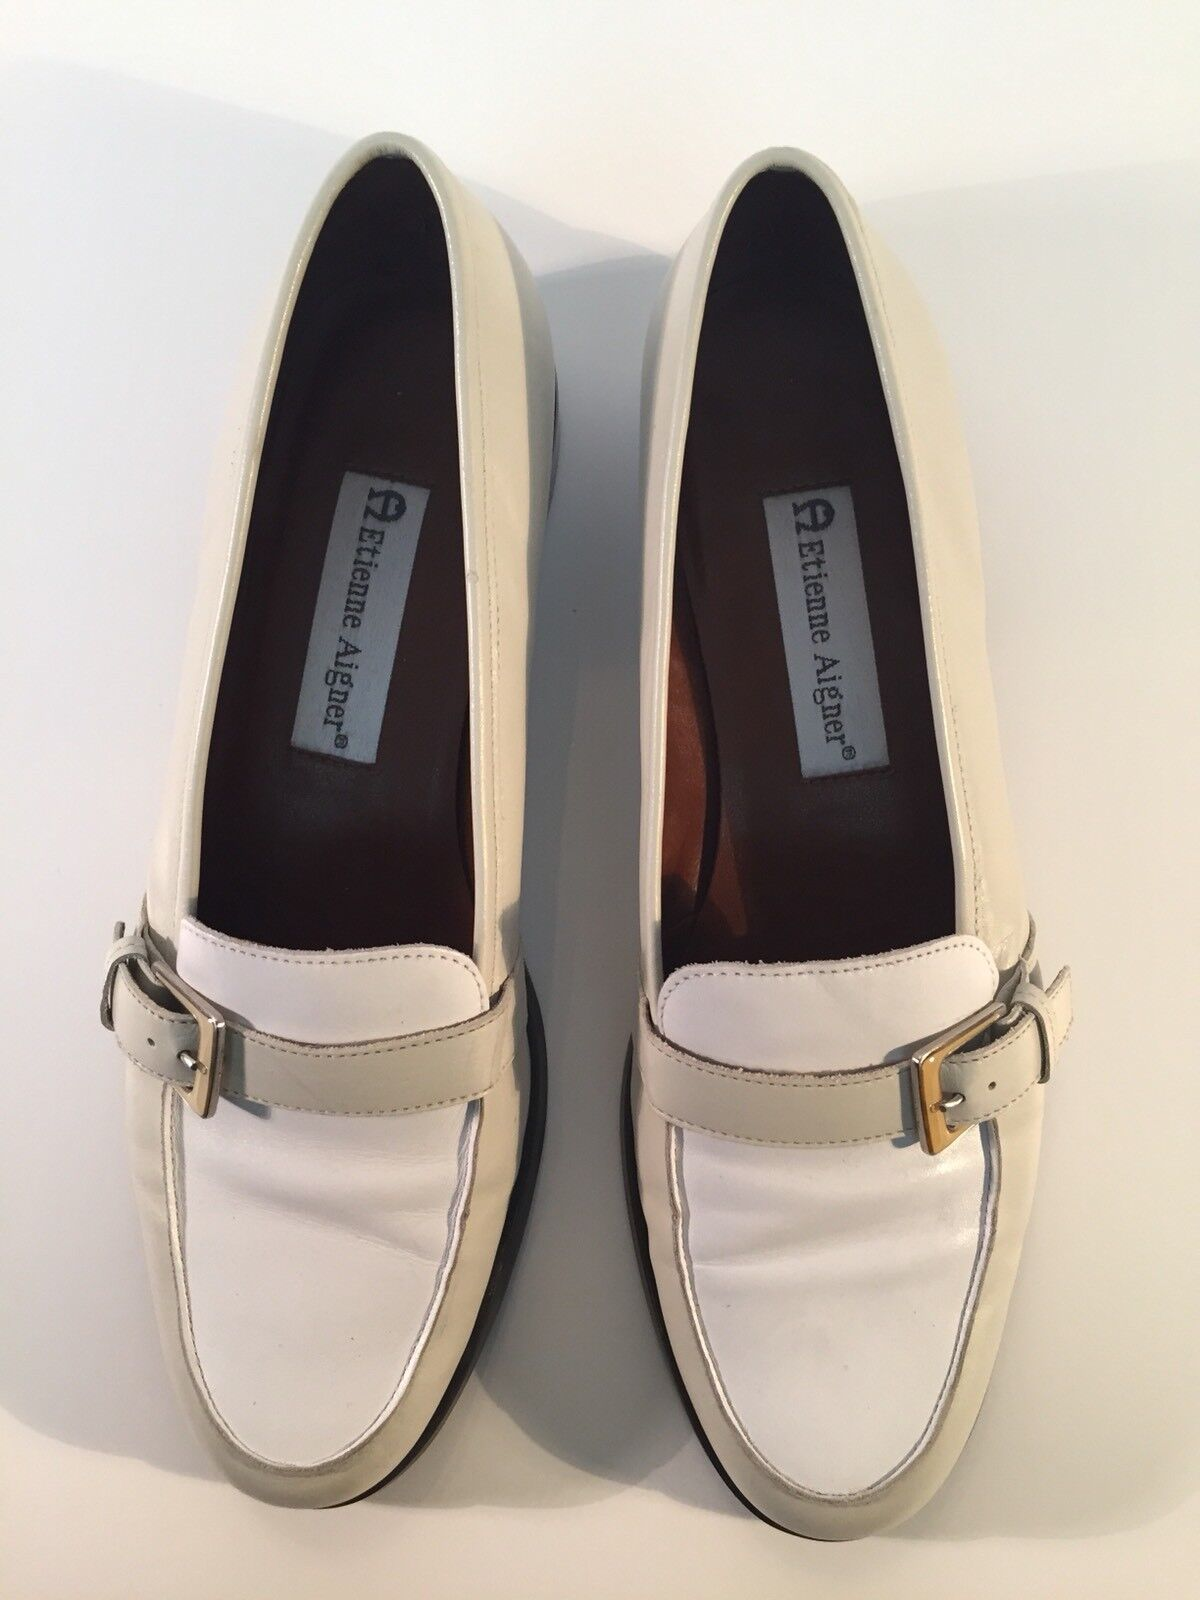 Etienne Aigner Carver Two Tone Side bianca   Ivory Pelle Side Tone